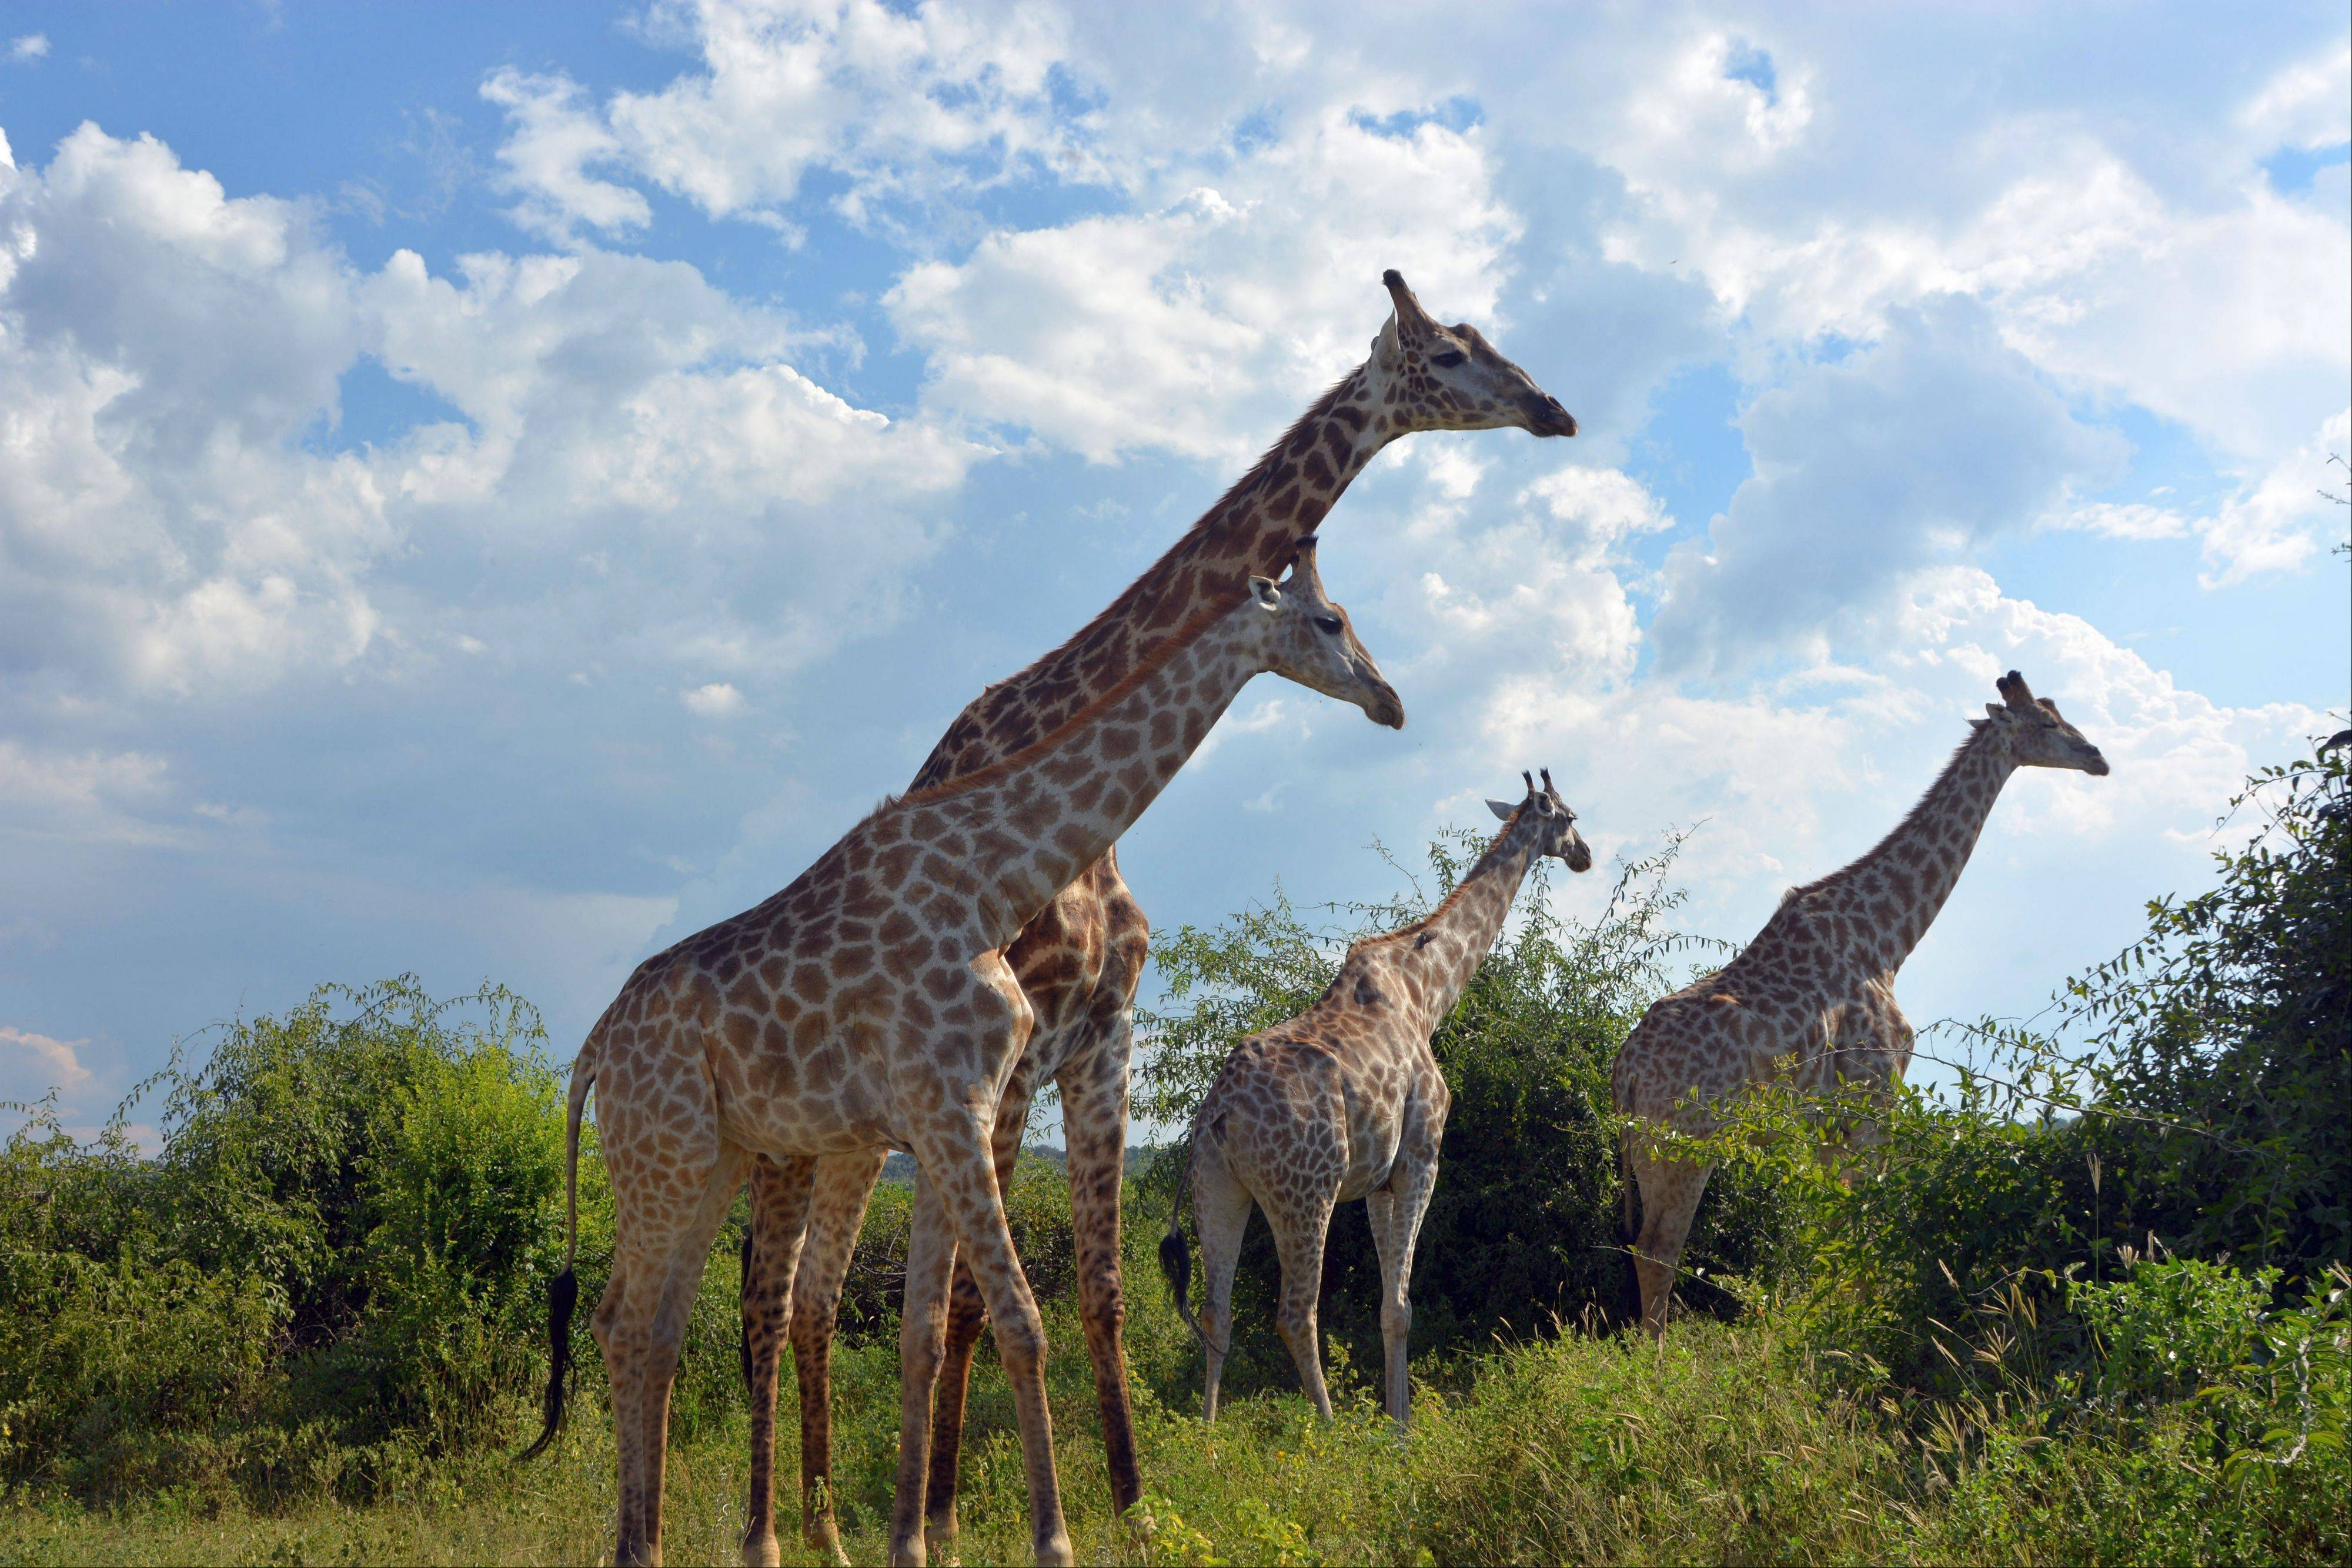 Giraffes stroll along the Chobe National Park in Botswana. Safaris in this rich game-viewing destination offer up-close views of giraffes and many other animals, including lions, elephants and hippos.